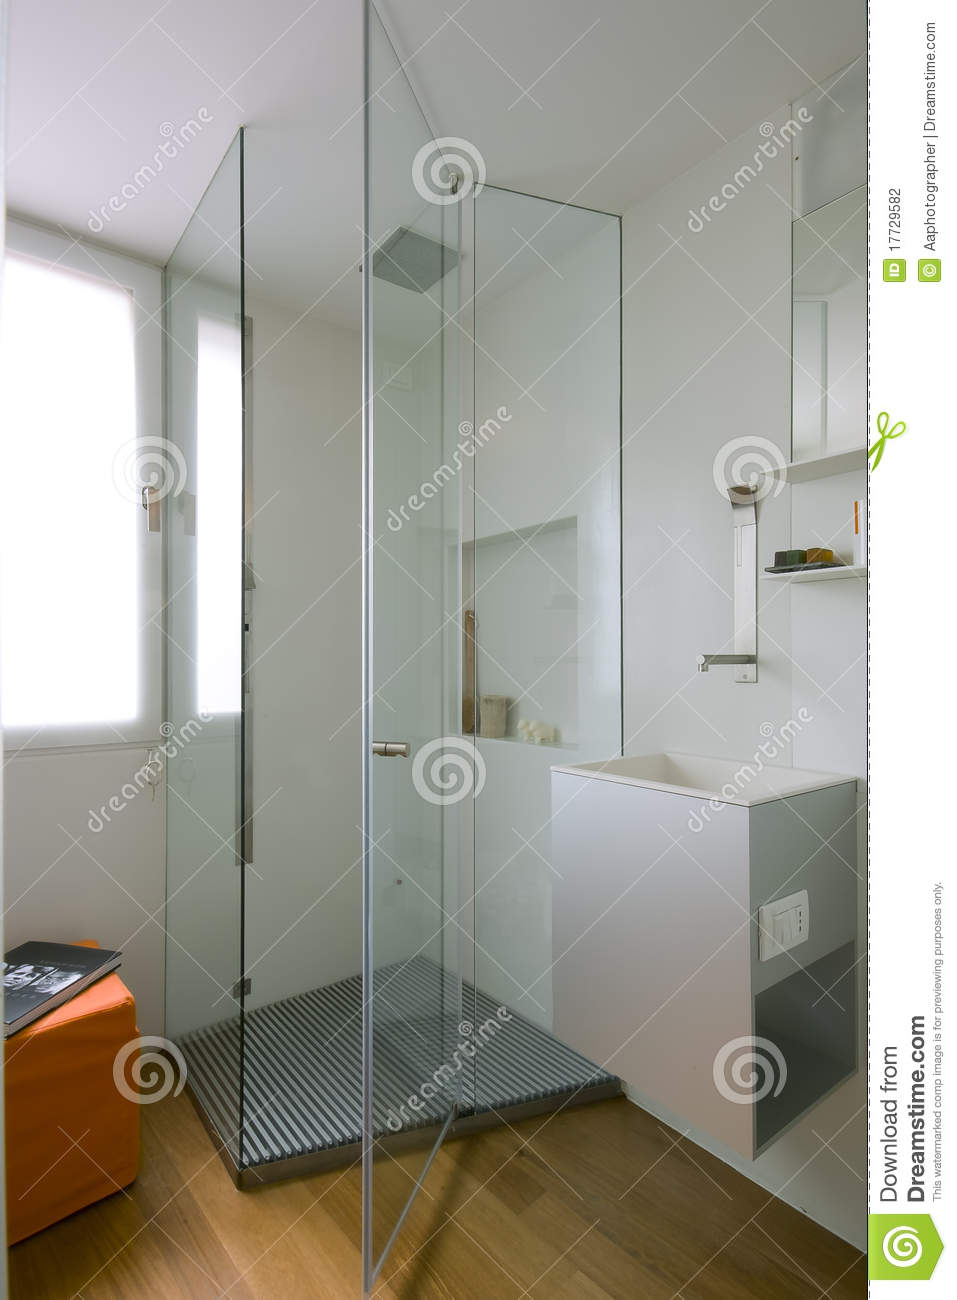 Shower Cubicle With Glass Partition Stock Photography